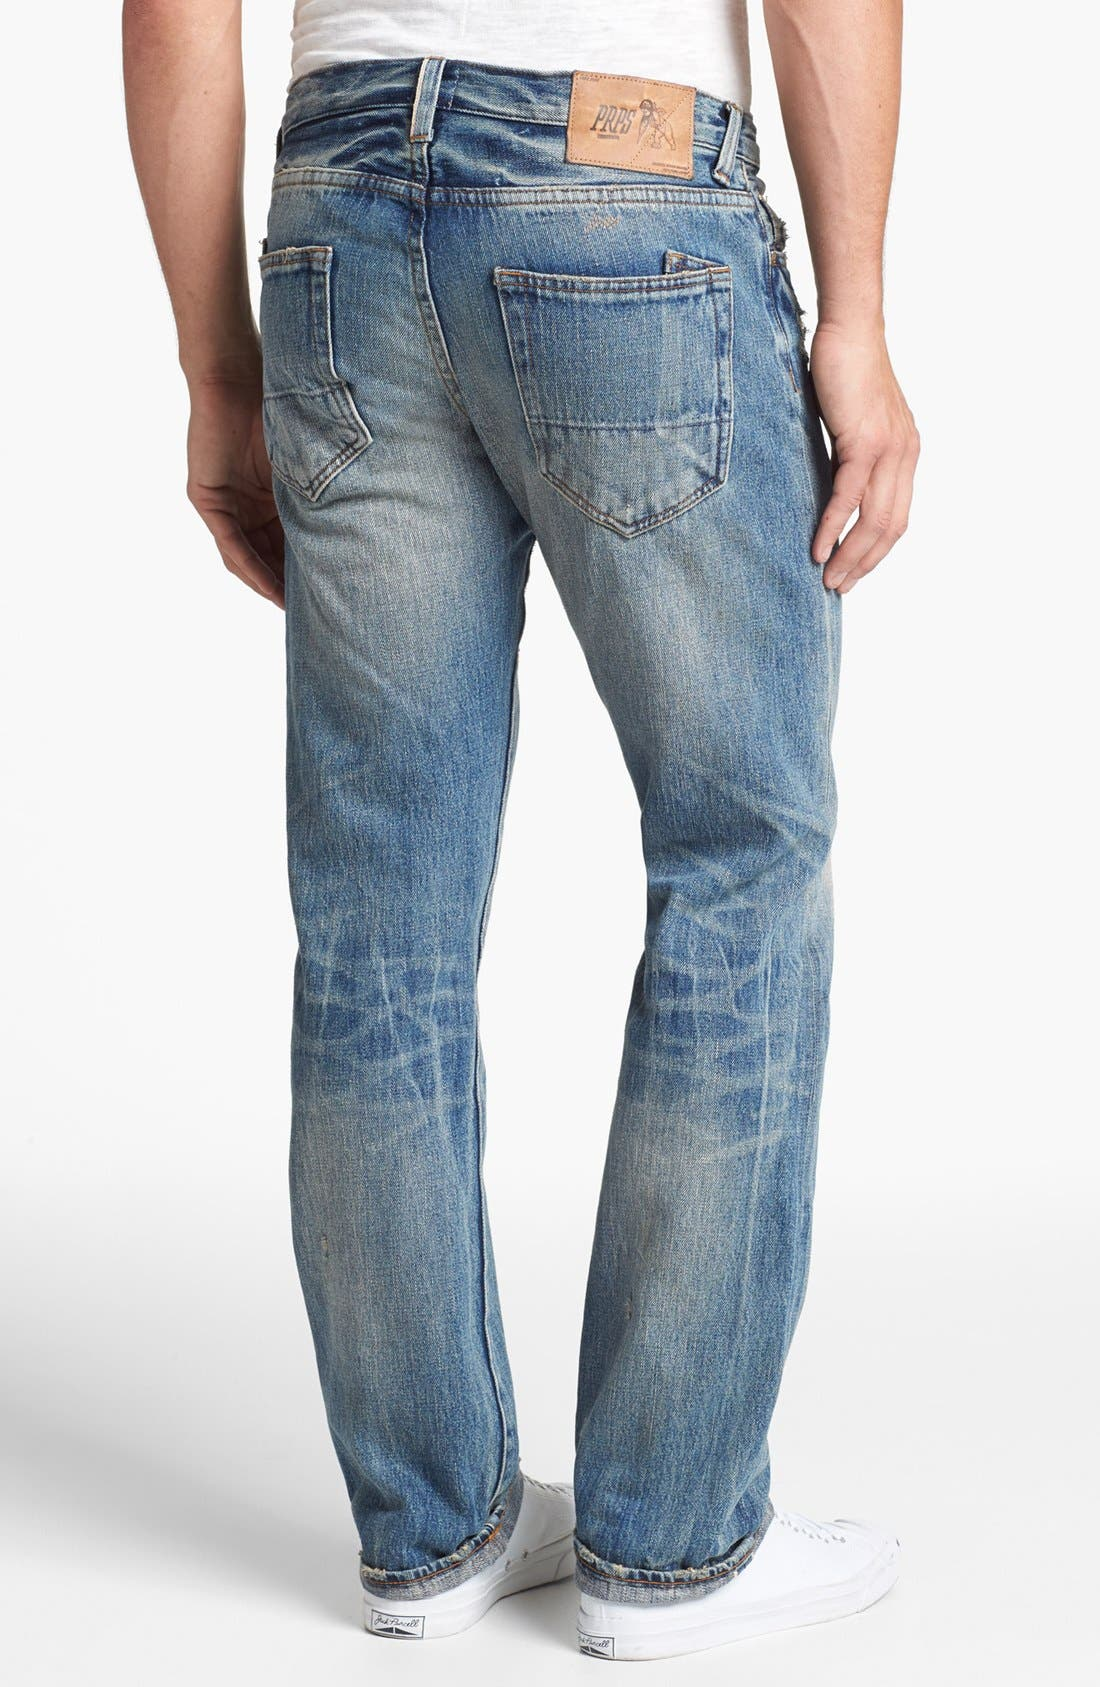 'Barracuda' Straight Leg Selvedge Jeans,                             Alternate thumbnail 2, color,                             5 Year Wash